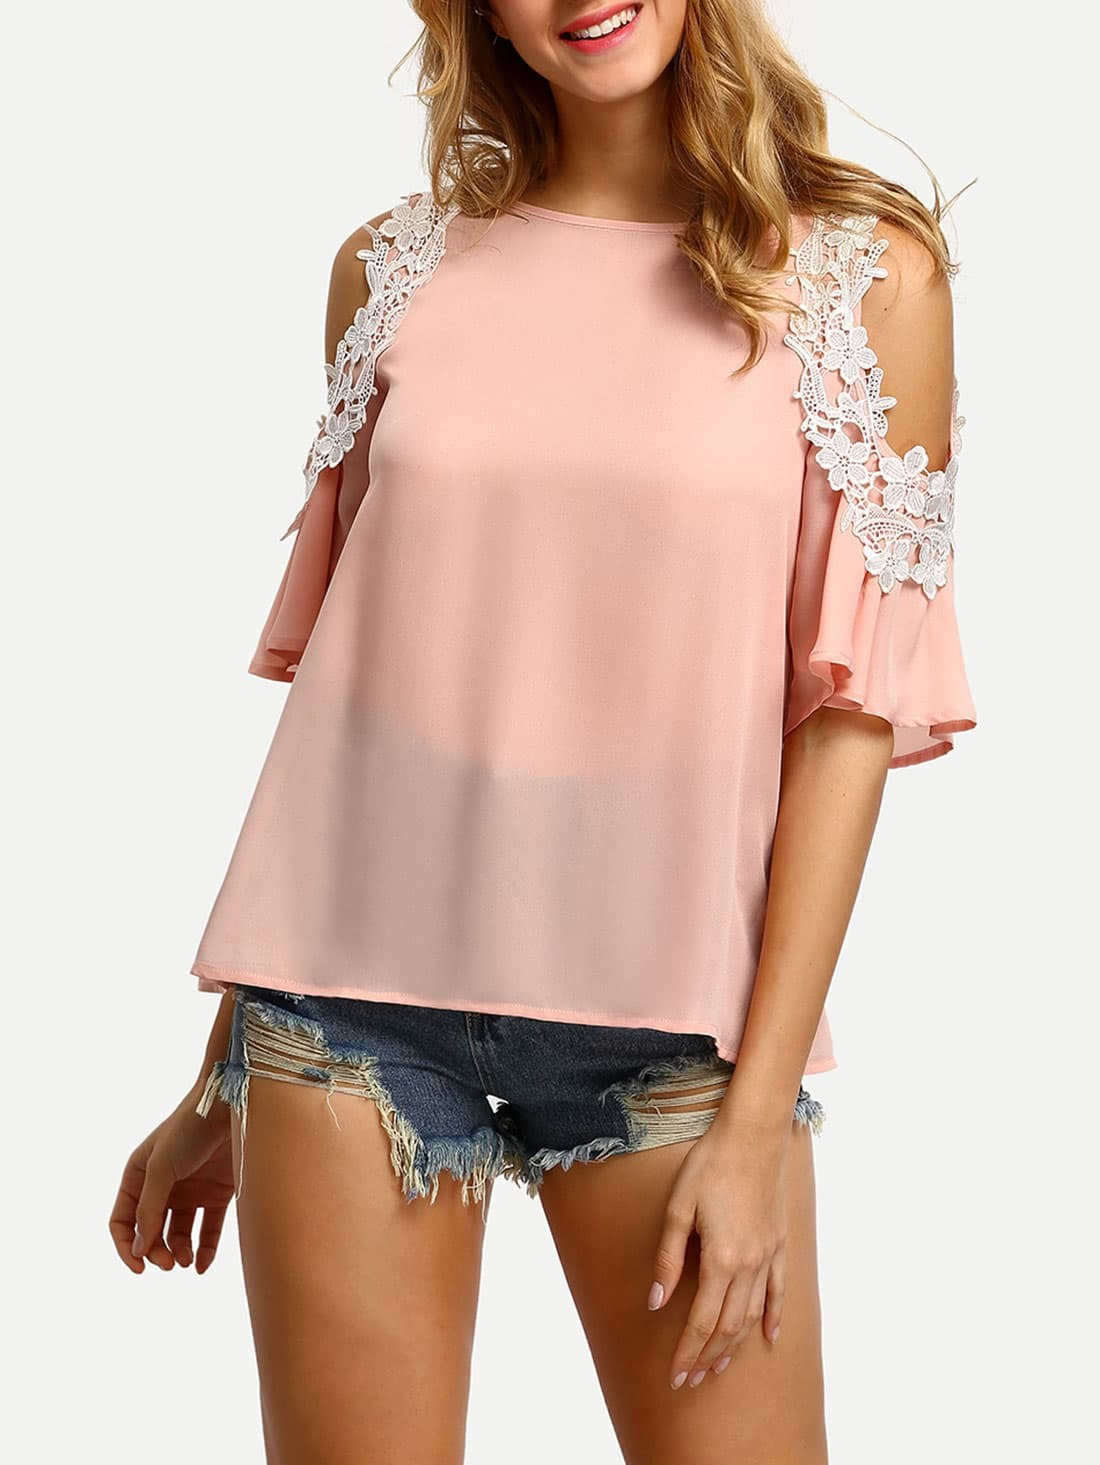 Pink Cold Shoulder Crochet Trim BlousePink Cold Shoulder Crochet Trim Blouse<br><br>color: Pink<br>size: L,M,S,XS